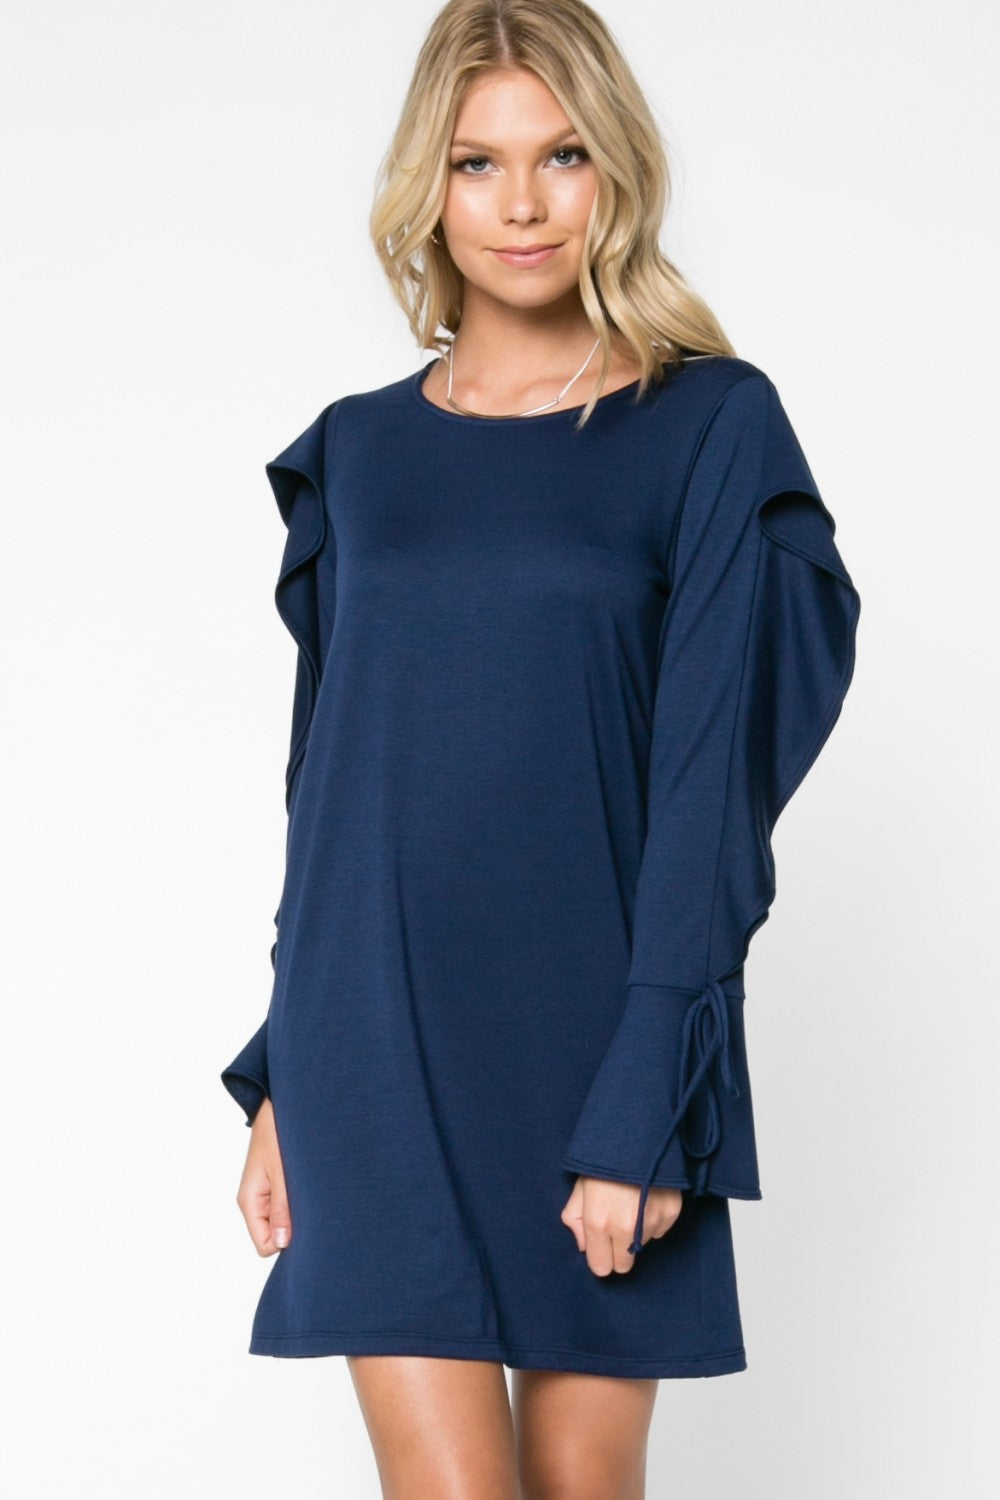 Everly Blue Falls Dress